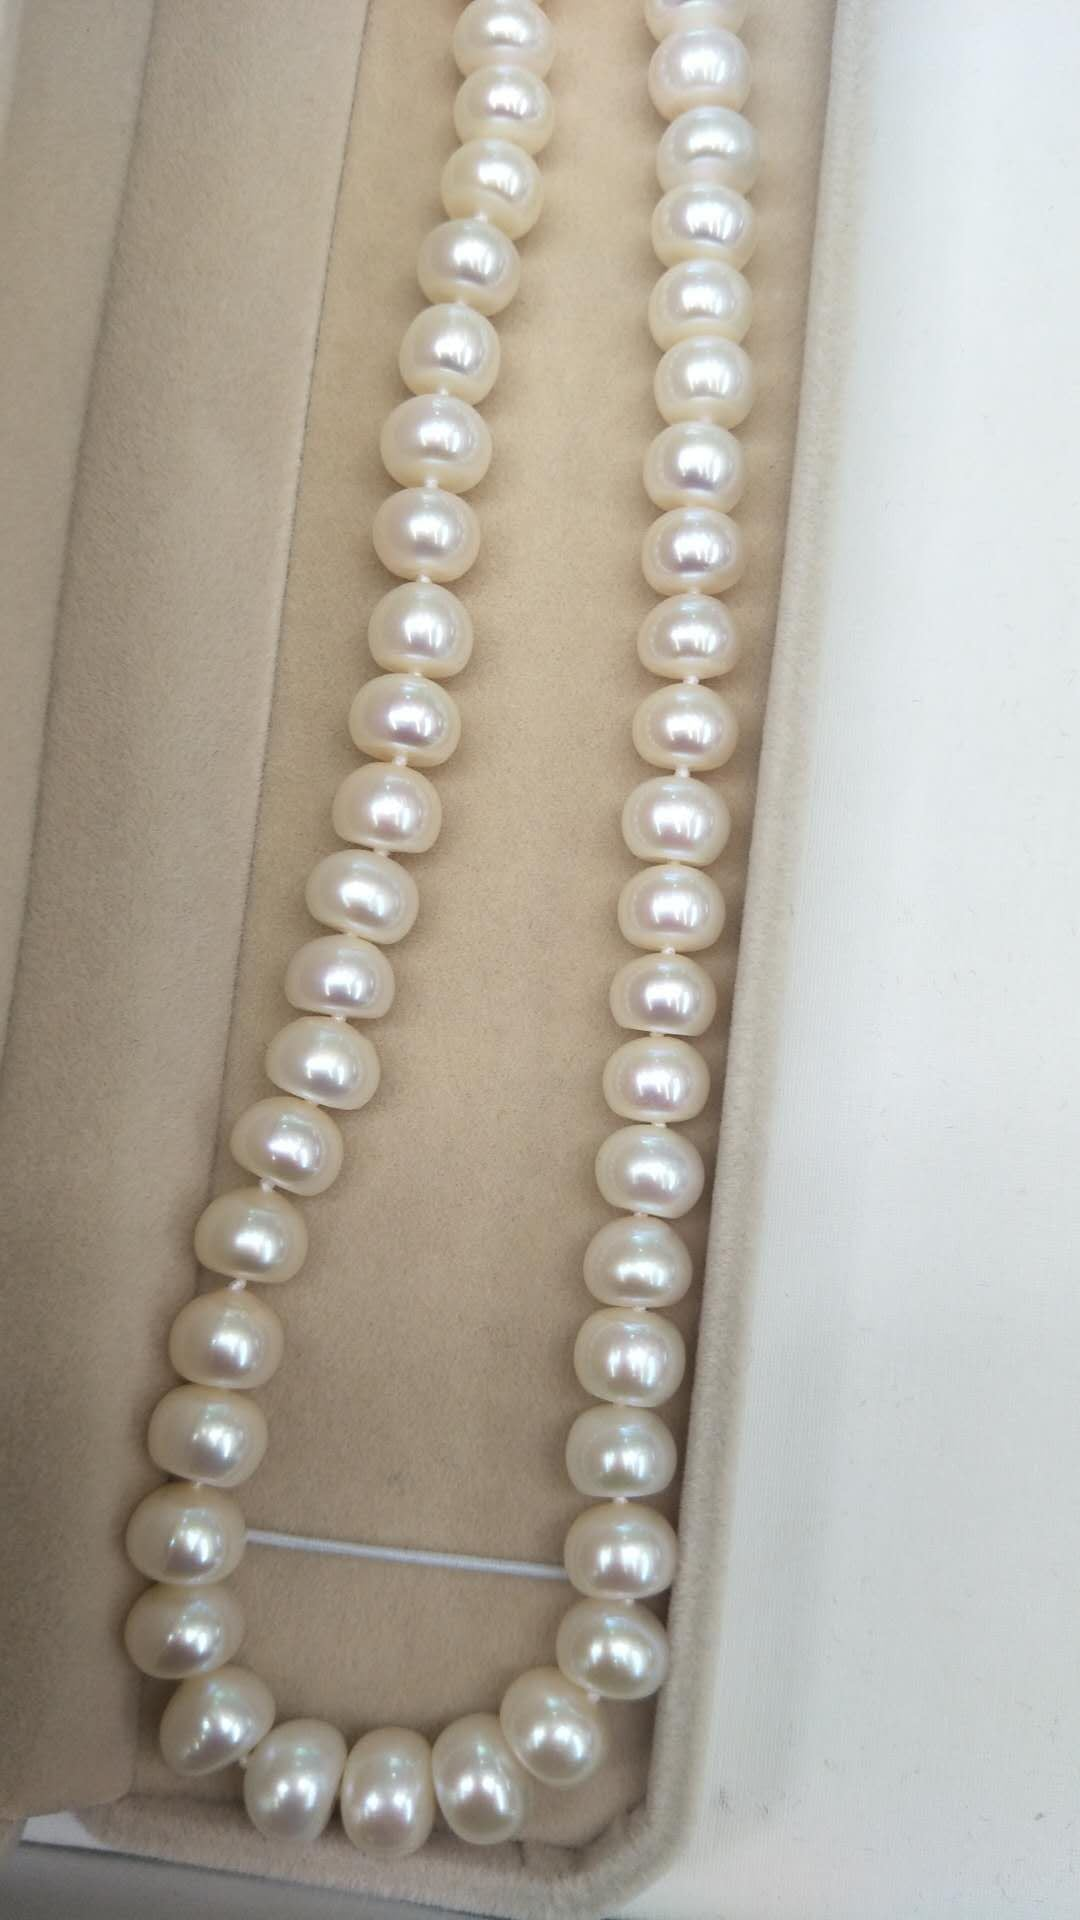 AAA grade, 9-10 mm Beautiful and Large cultured water Pearl necklace-Must Have!